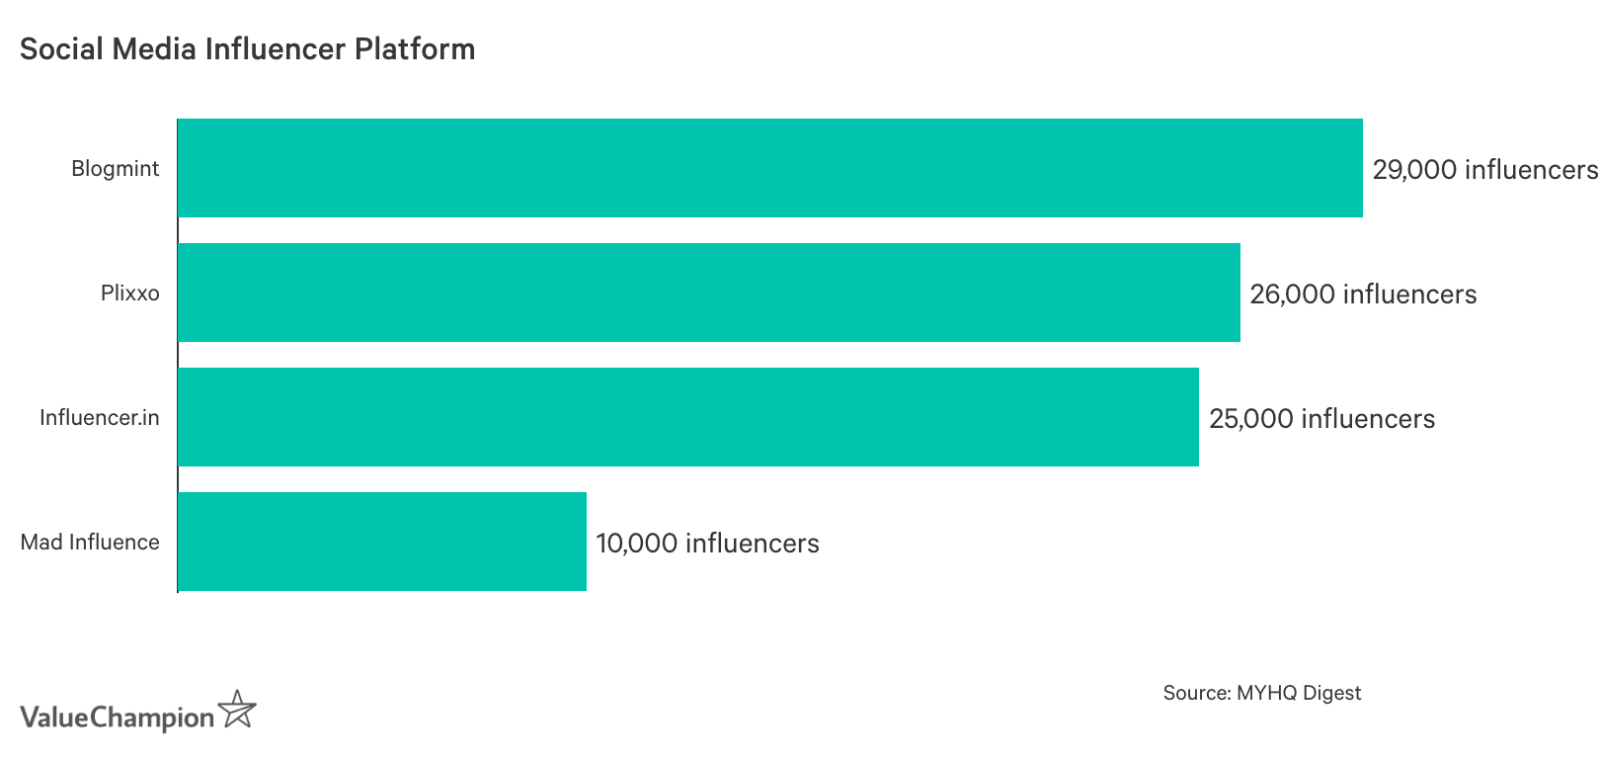 Graph showing Social Media Influencer Platforms